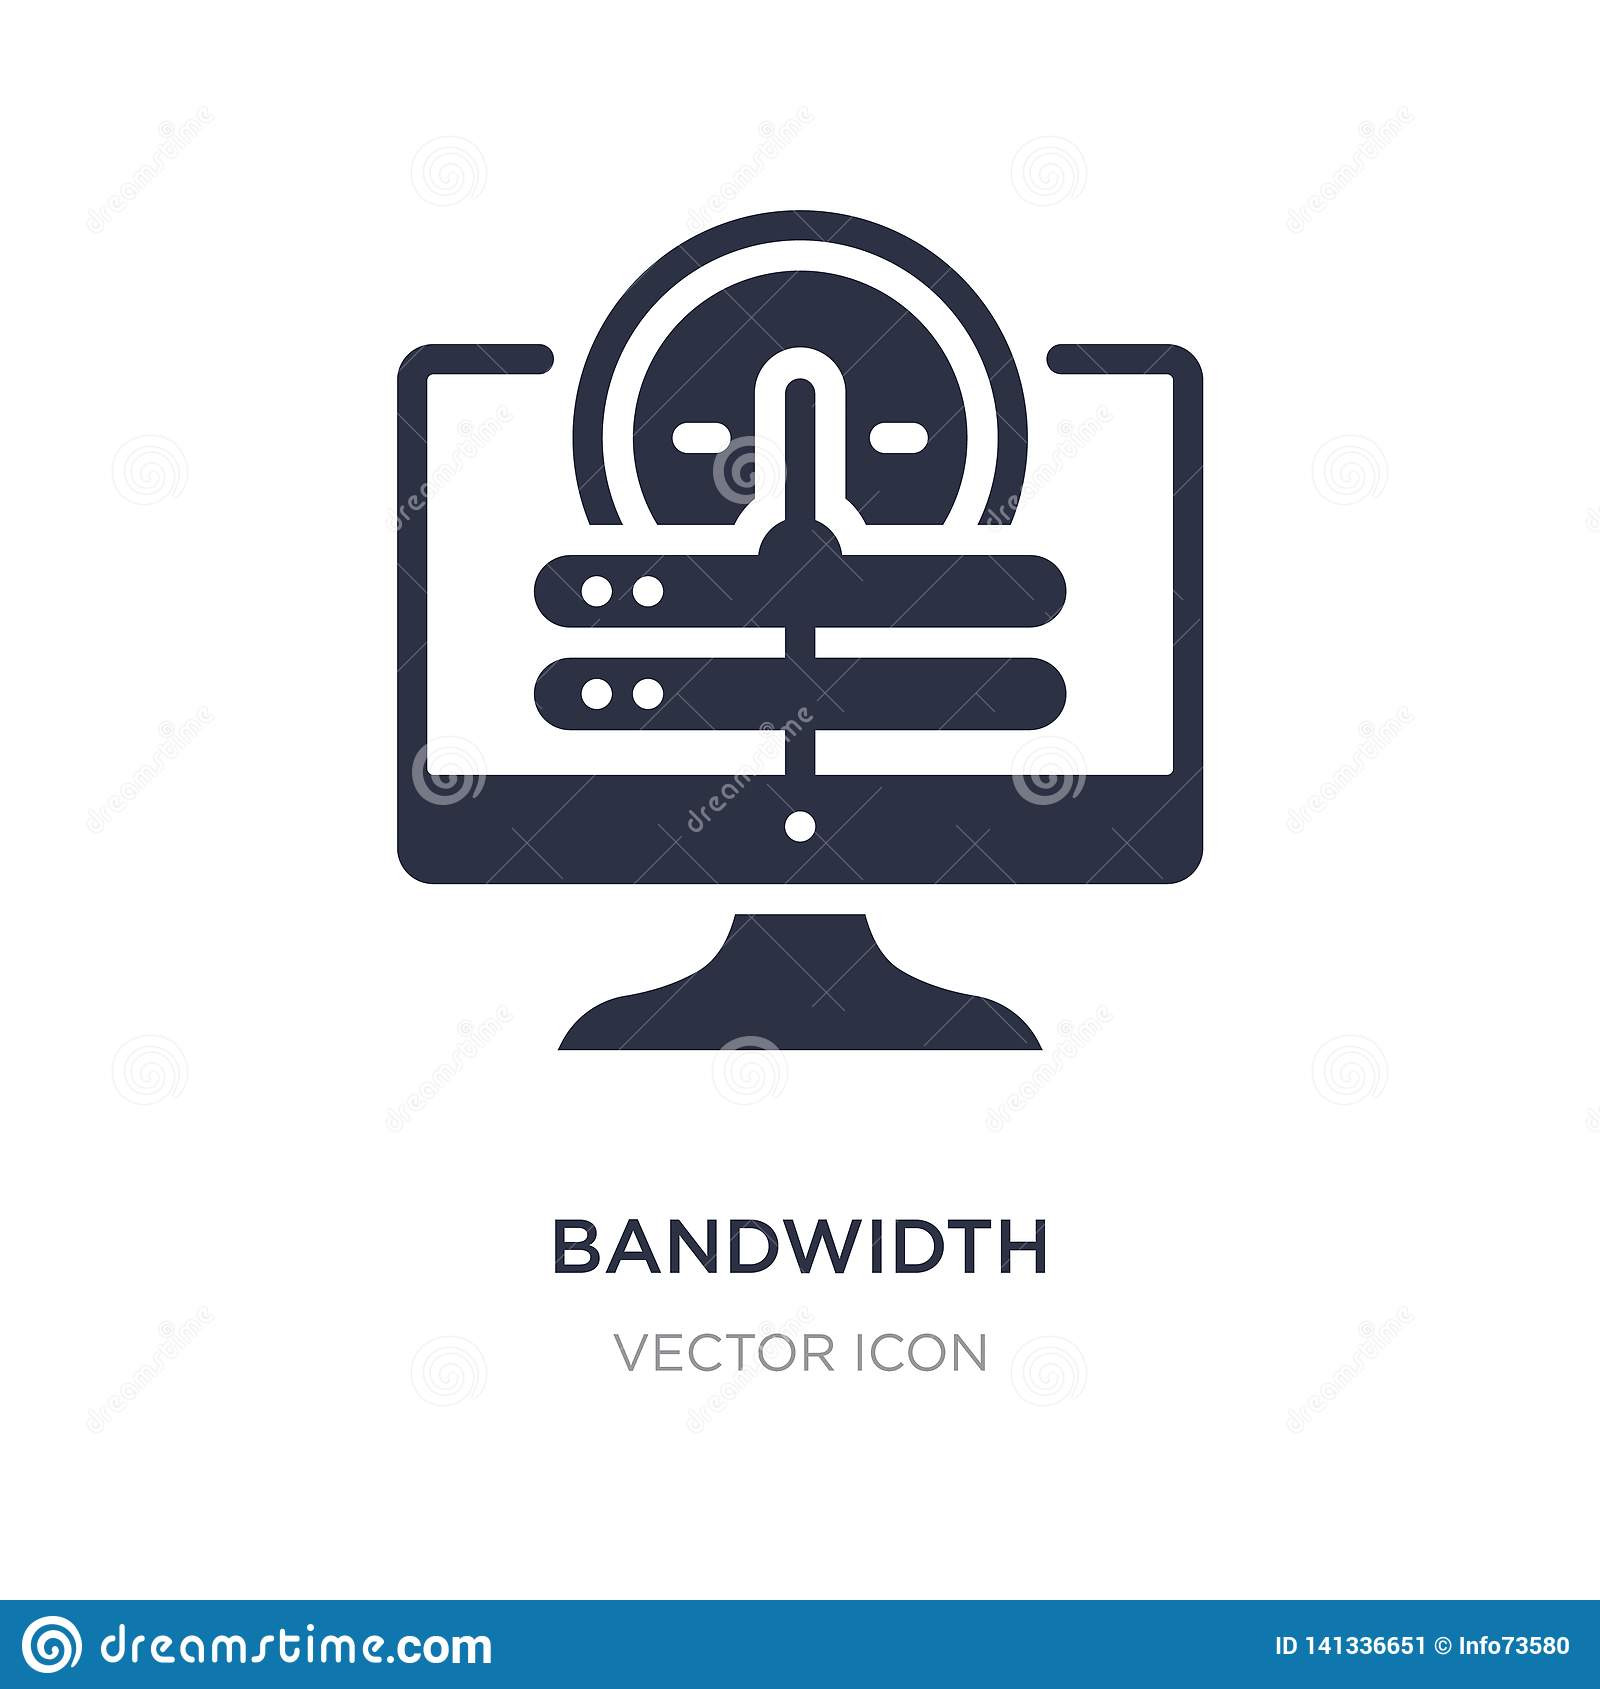 bandwidth icon on white background. Simple element illustration from Web hosting concept